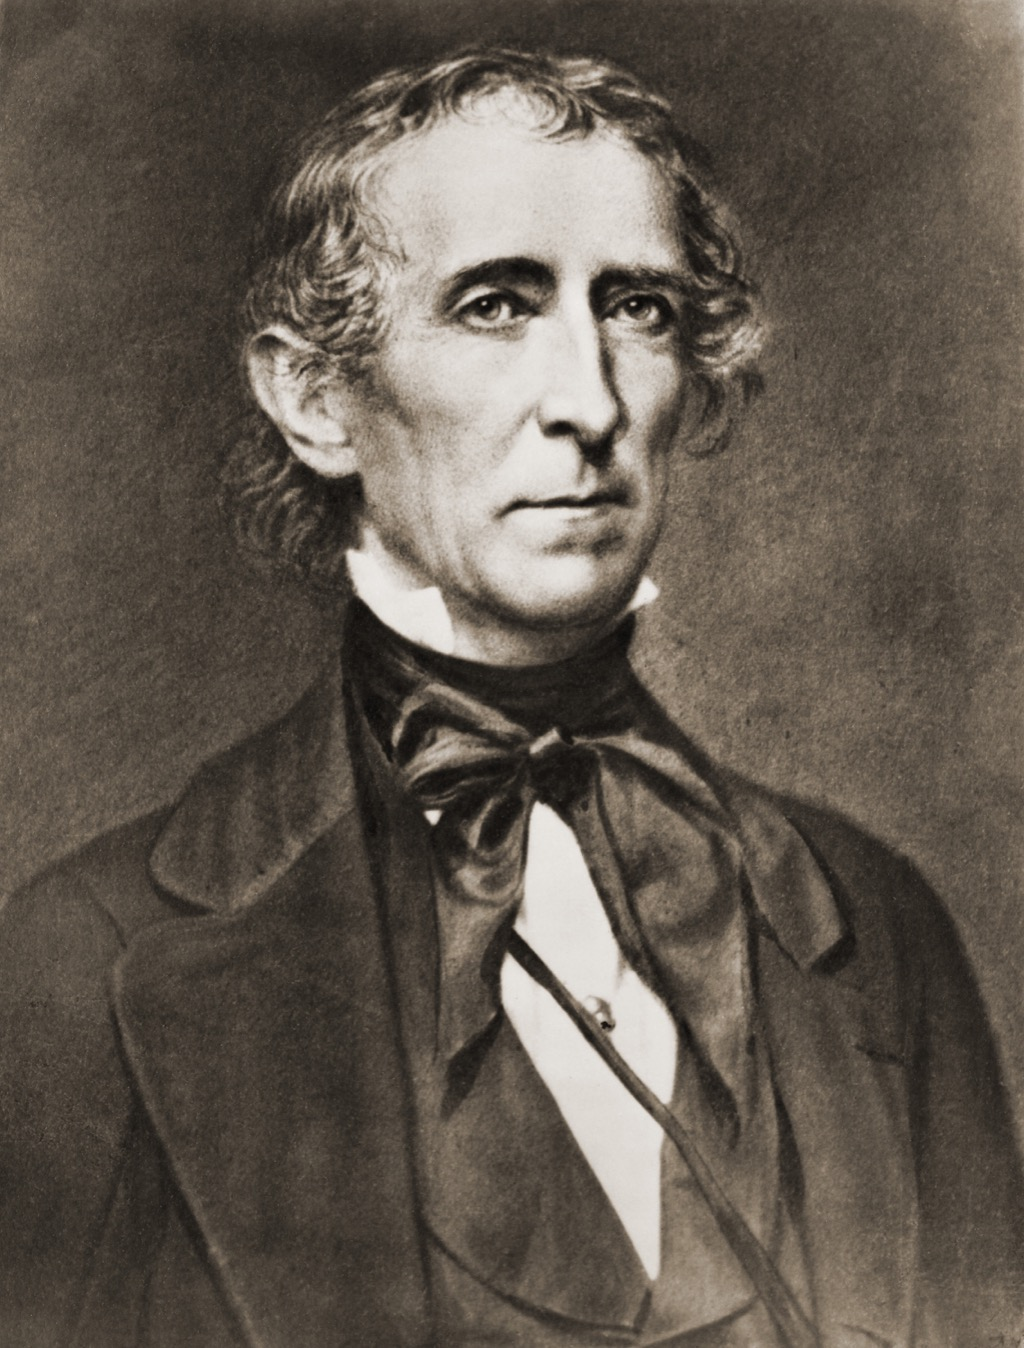 President John Tyler 1790-1862 succeeded William Harrison after his death from pneumonia. His landmark accomplishment the 1845 annexation of the Republic of Texas.